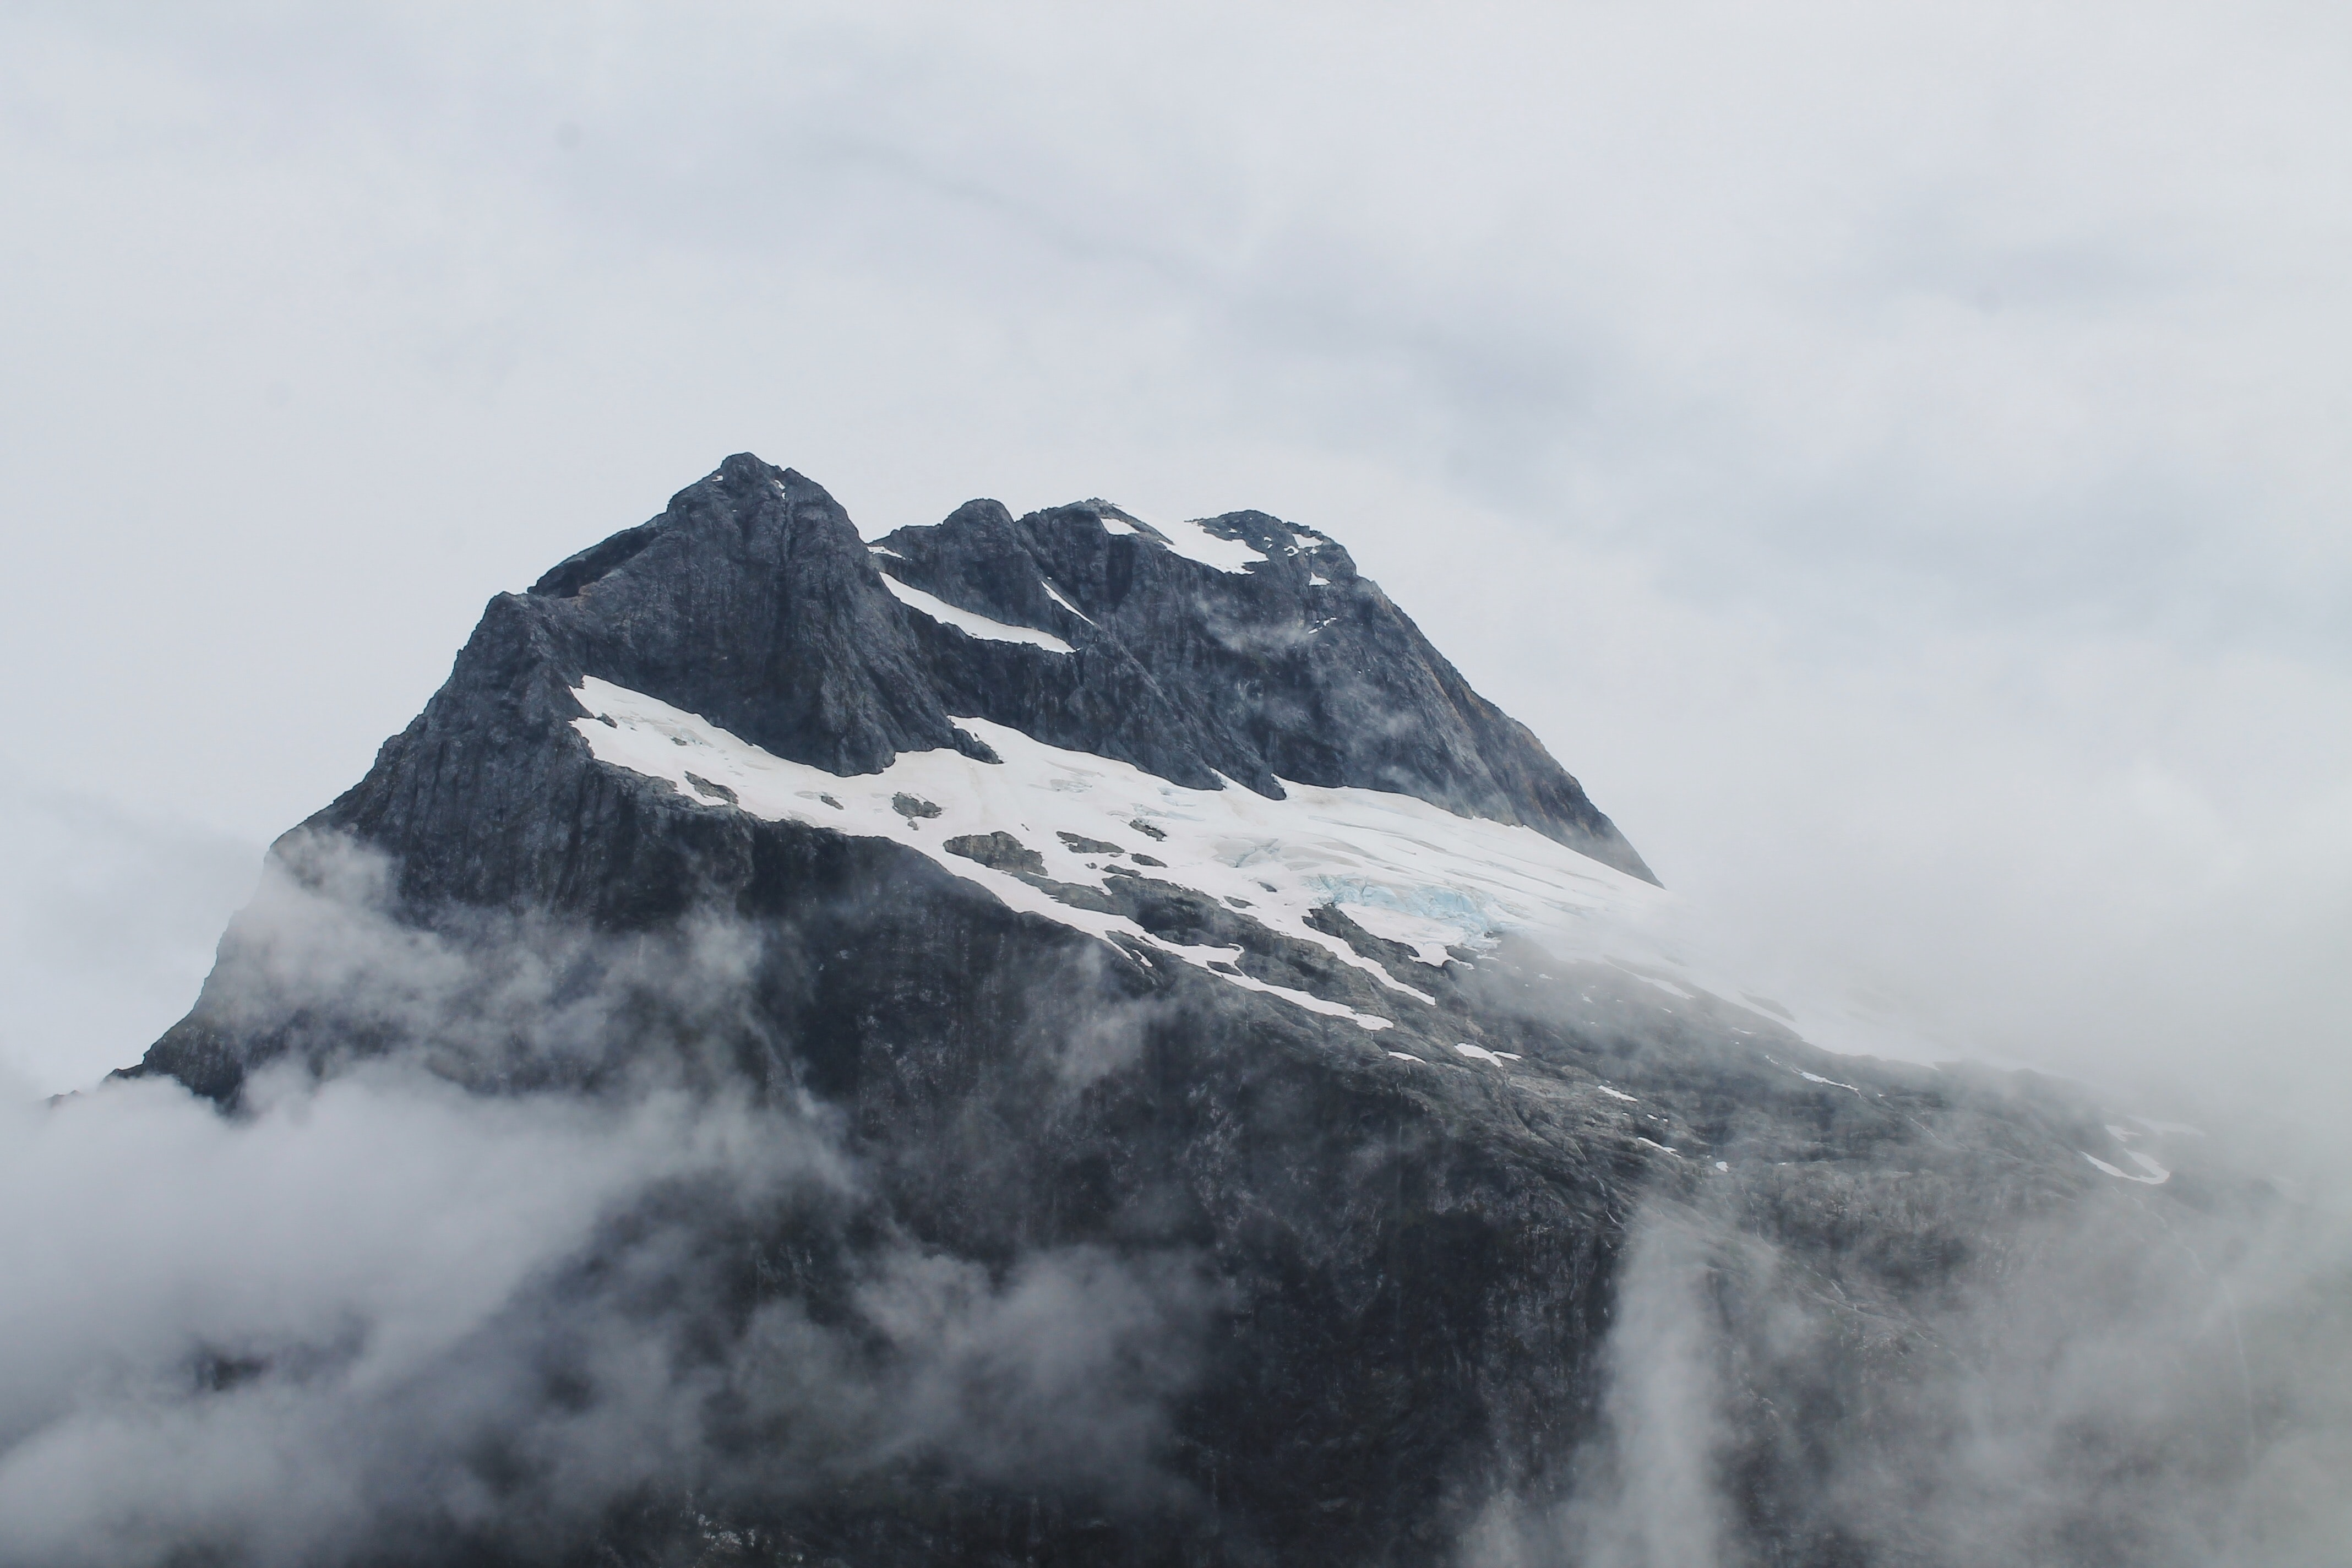 snow on top of mountain surrounded by clouds